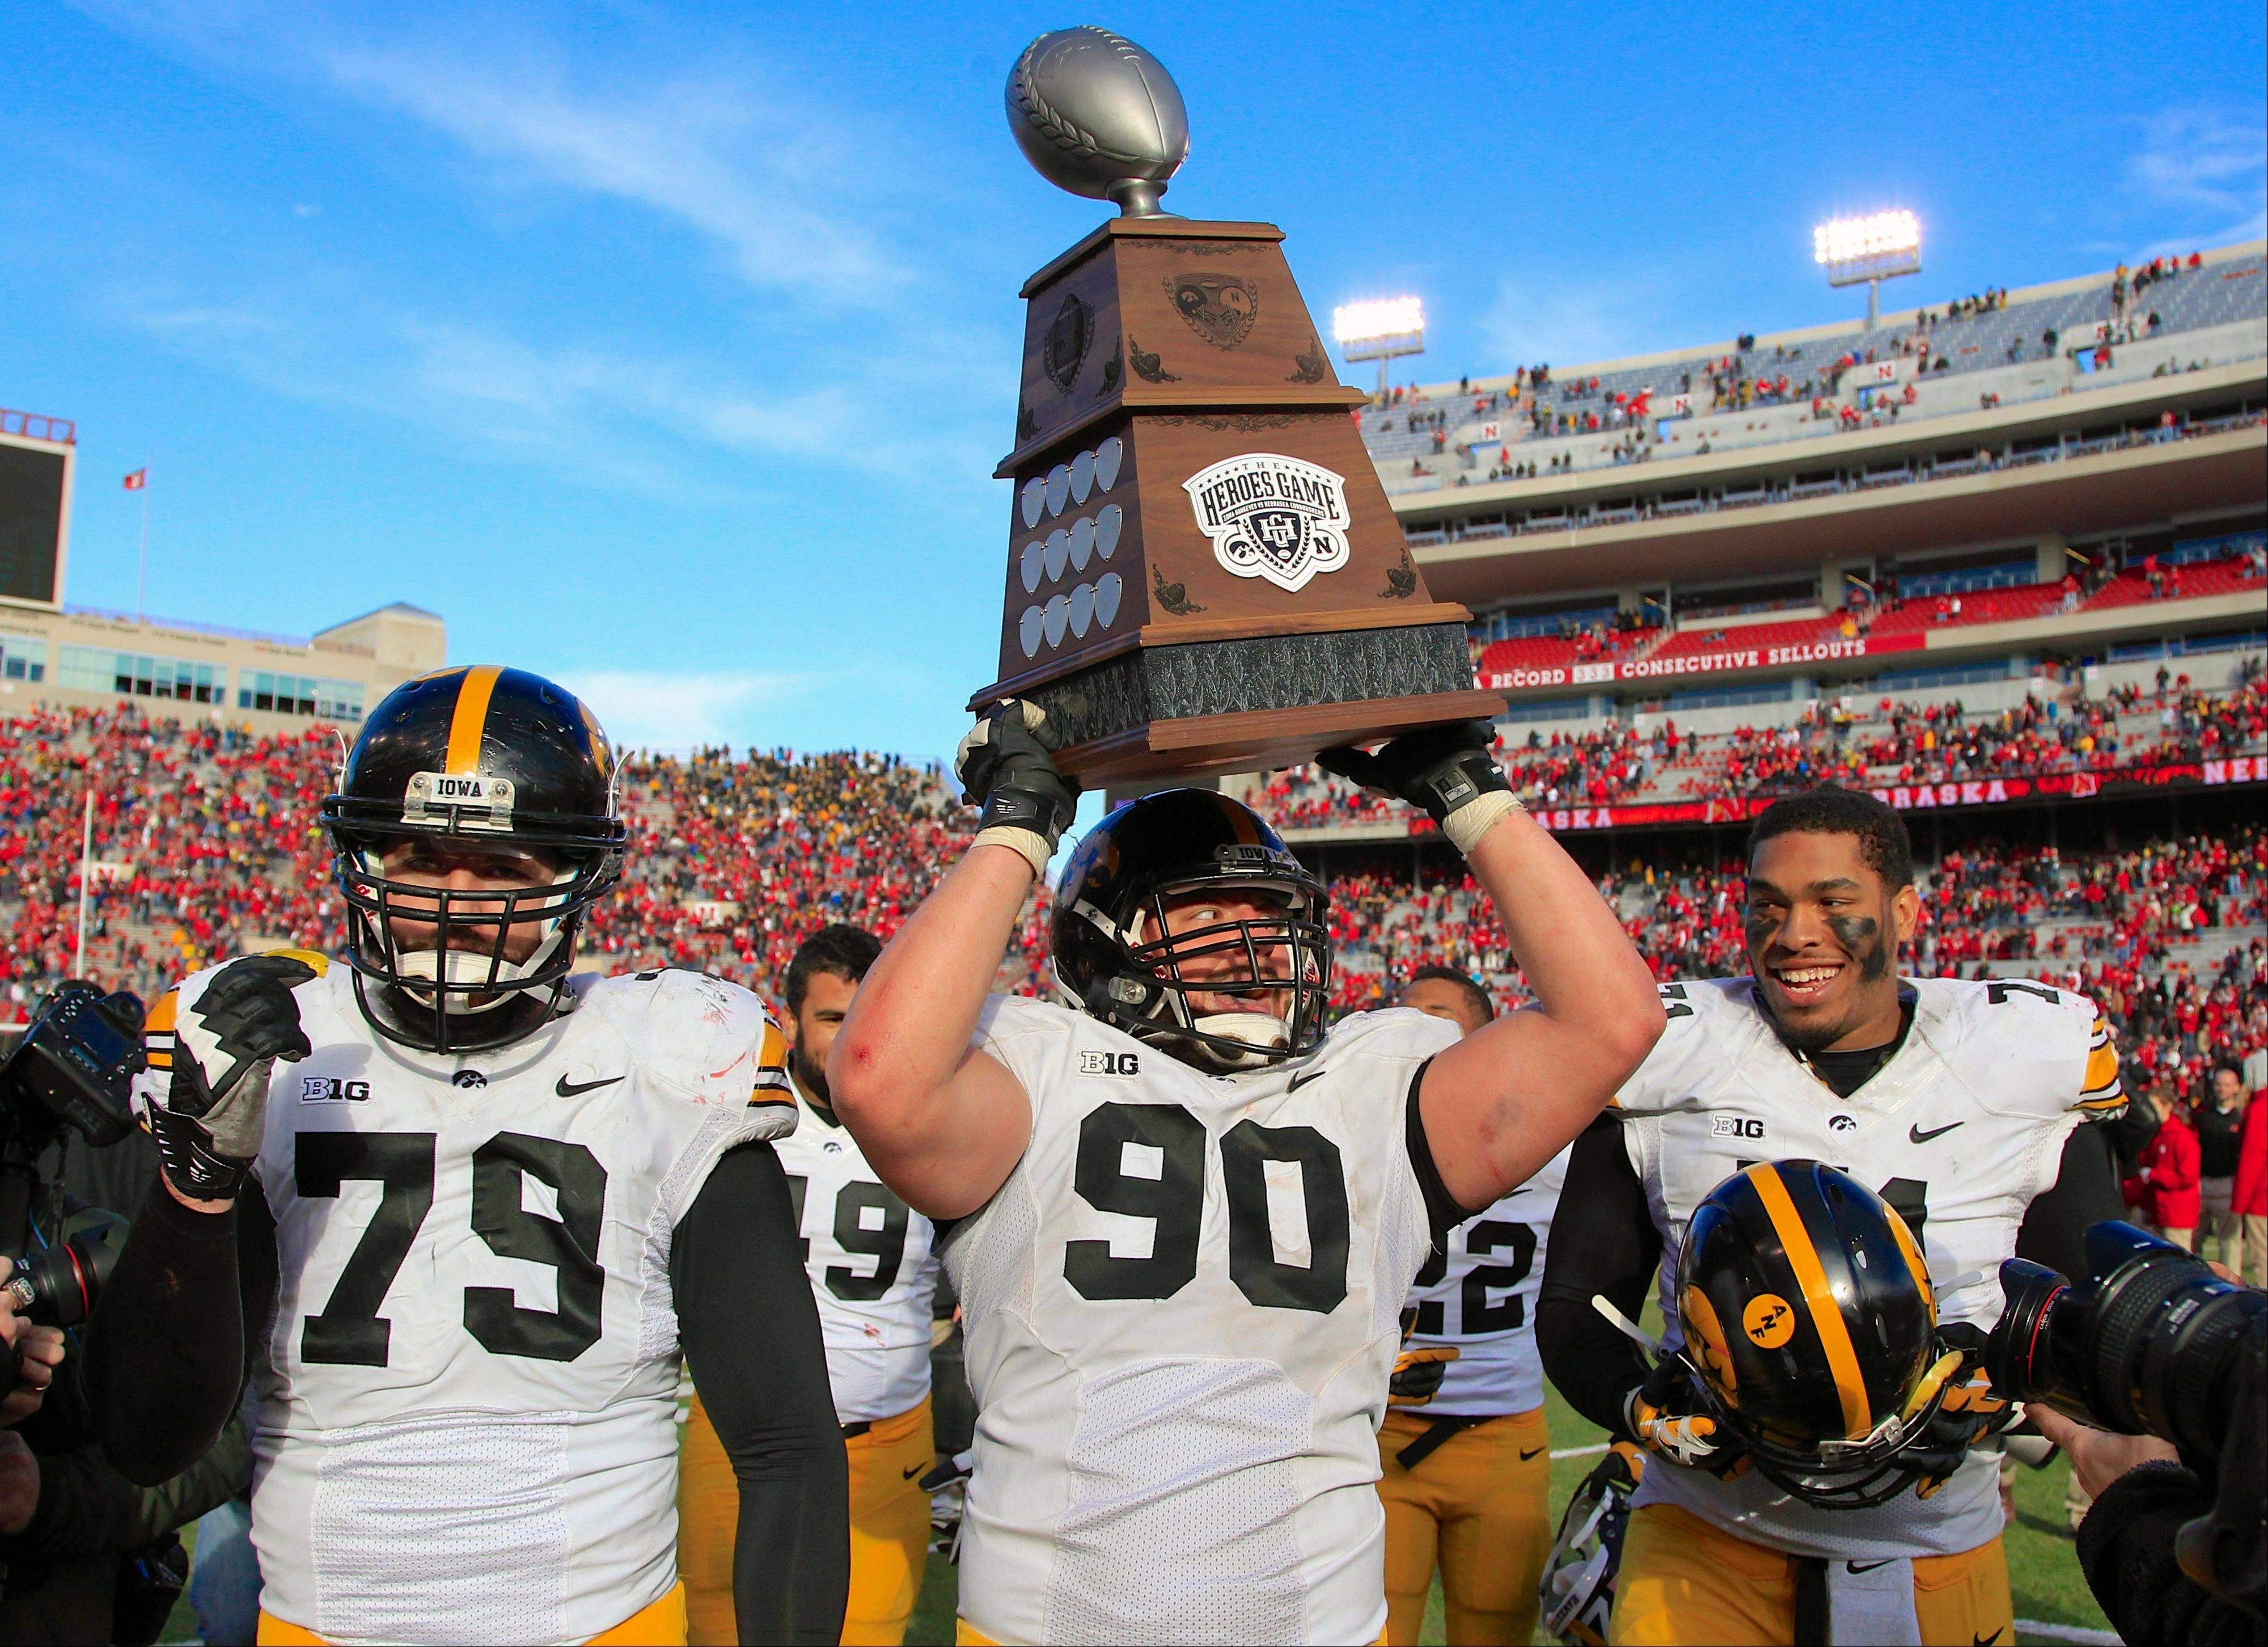 Iowa defensive lineman Louis Trinca-Pasat (90), flanked by teammates Dominic Alvis (79) and Carl Davis (71), hoists the Heroes Trophy after a win over Nebraska on Friday in Lincoln.